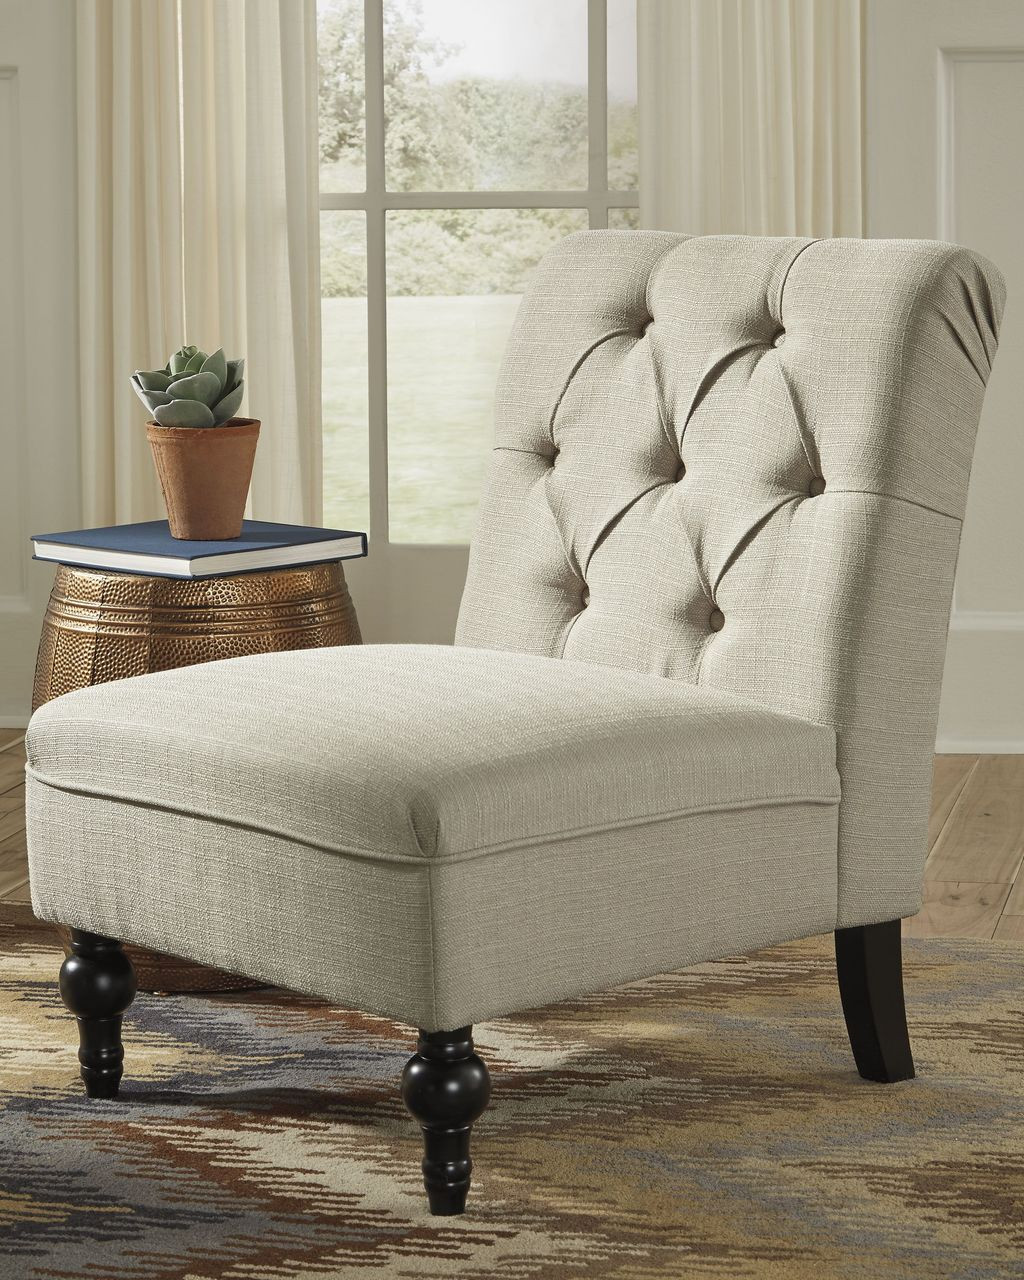 Incredible The Degas Oatmeal Accent Chair Available At Ritz Furniture Bralicious Painted Fabric Chair Ideas Braliciousco